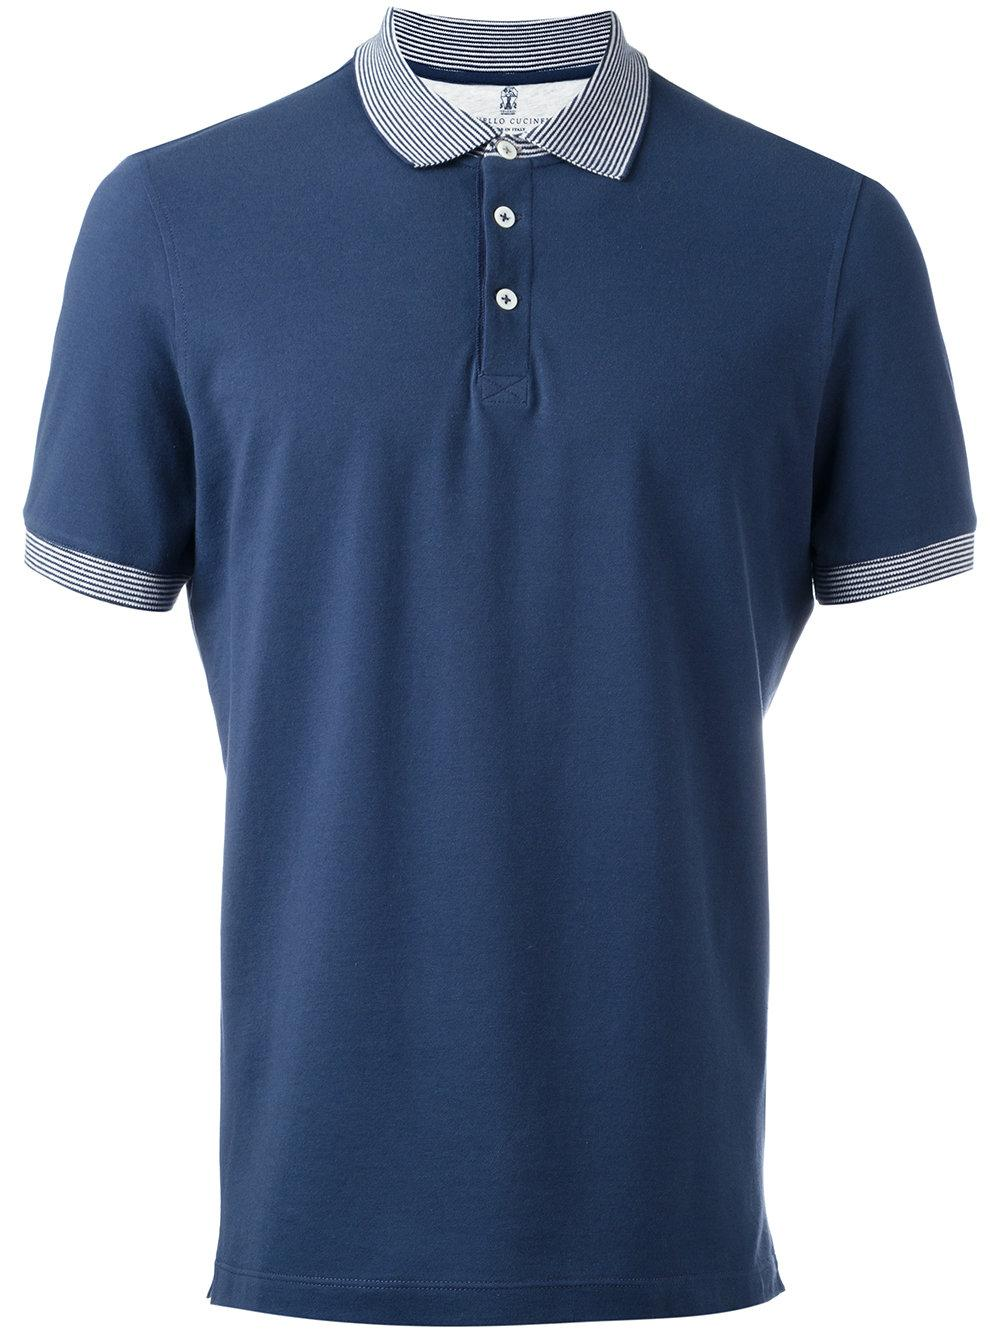 Brunello cucinelli striped collar polo shirt in blue for for Blue striped shirt mens